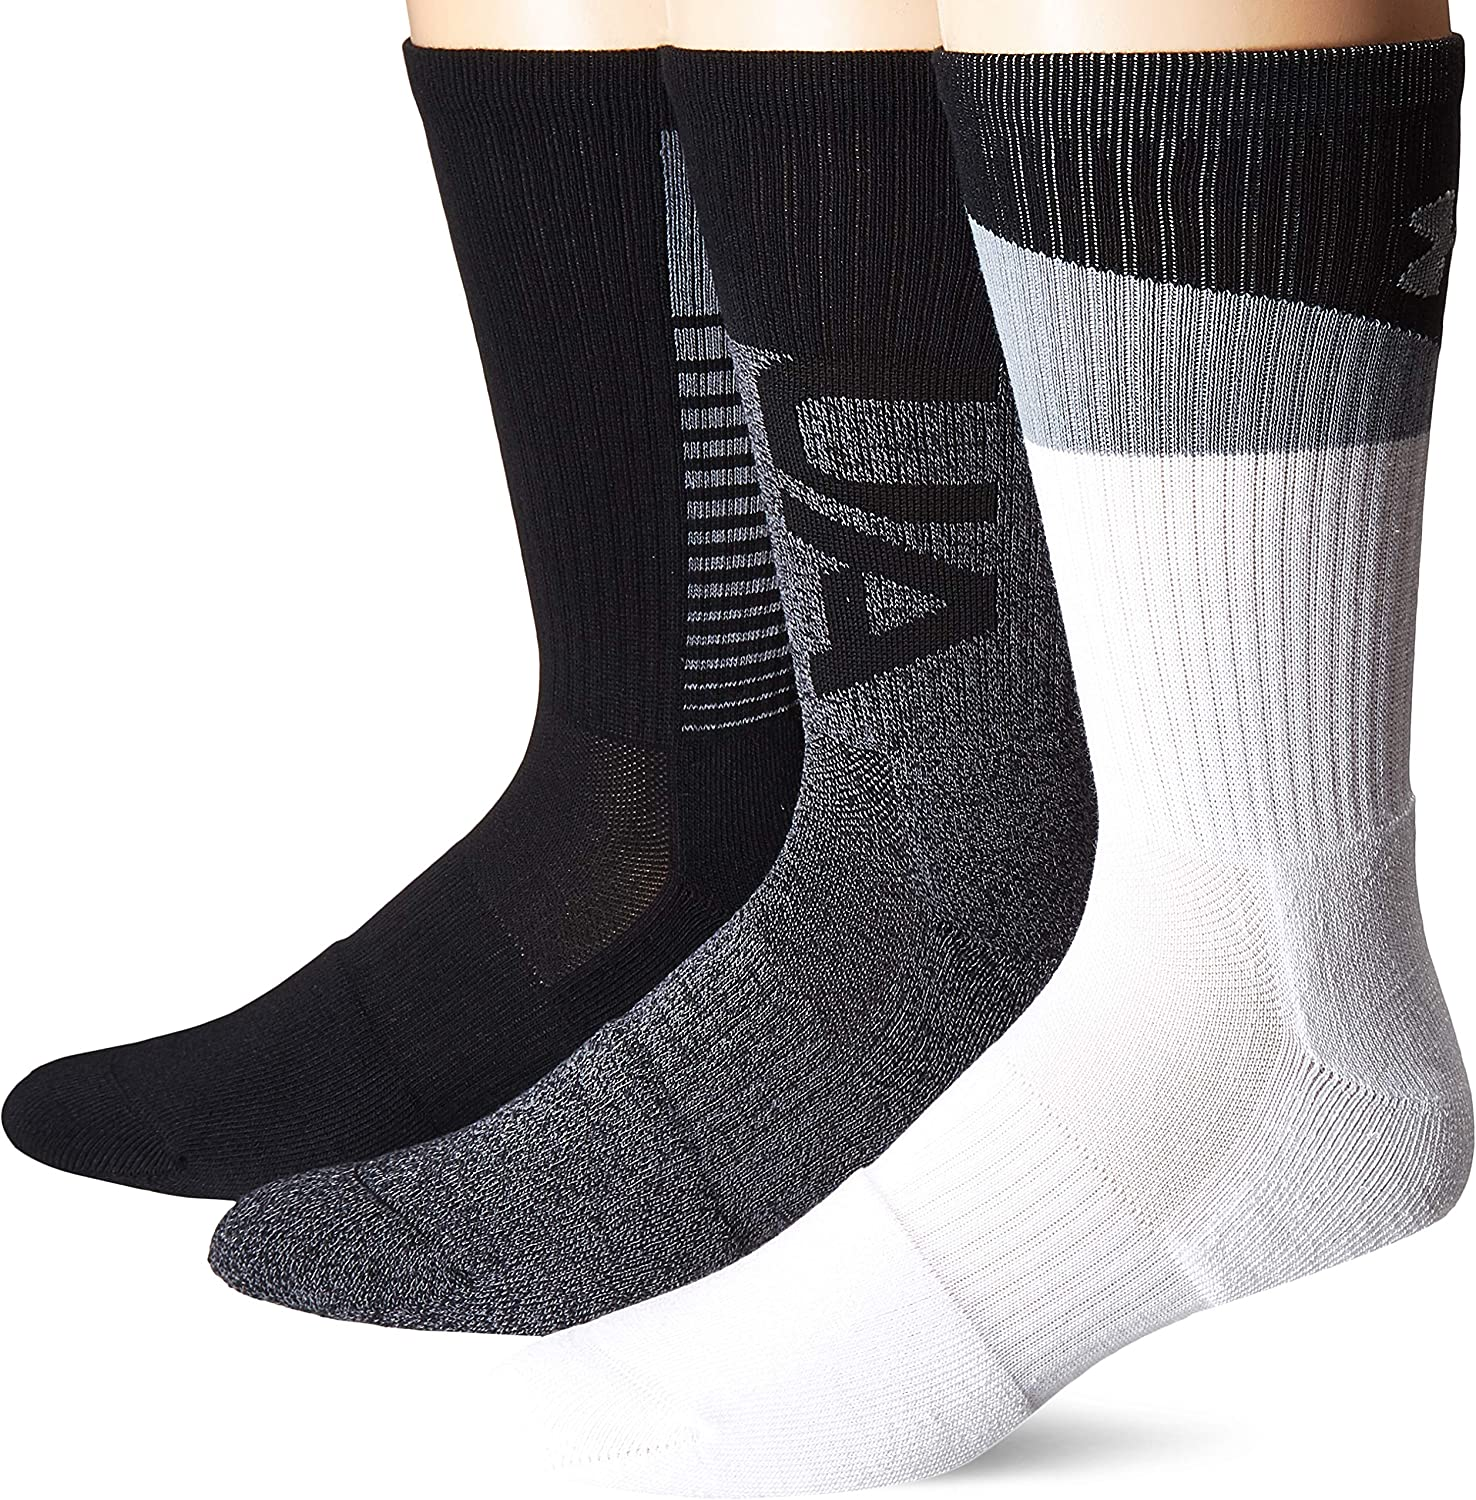 3 Pack Pick SZ//Color. Under Armour Socks Mens Elevated Performance Crew